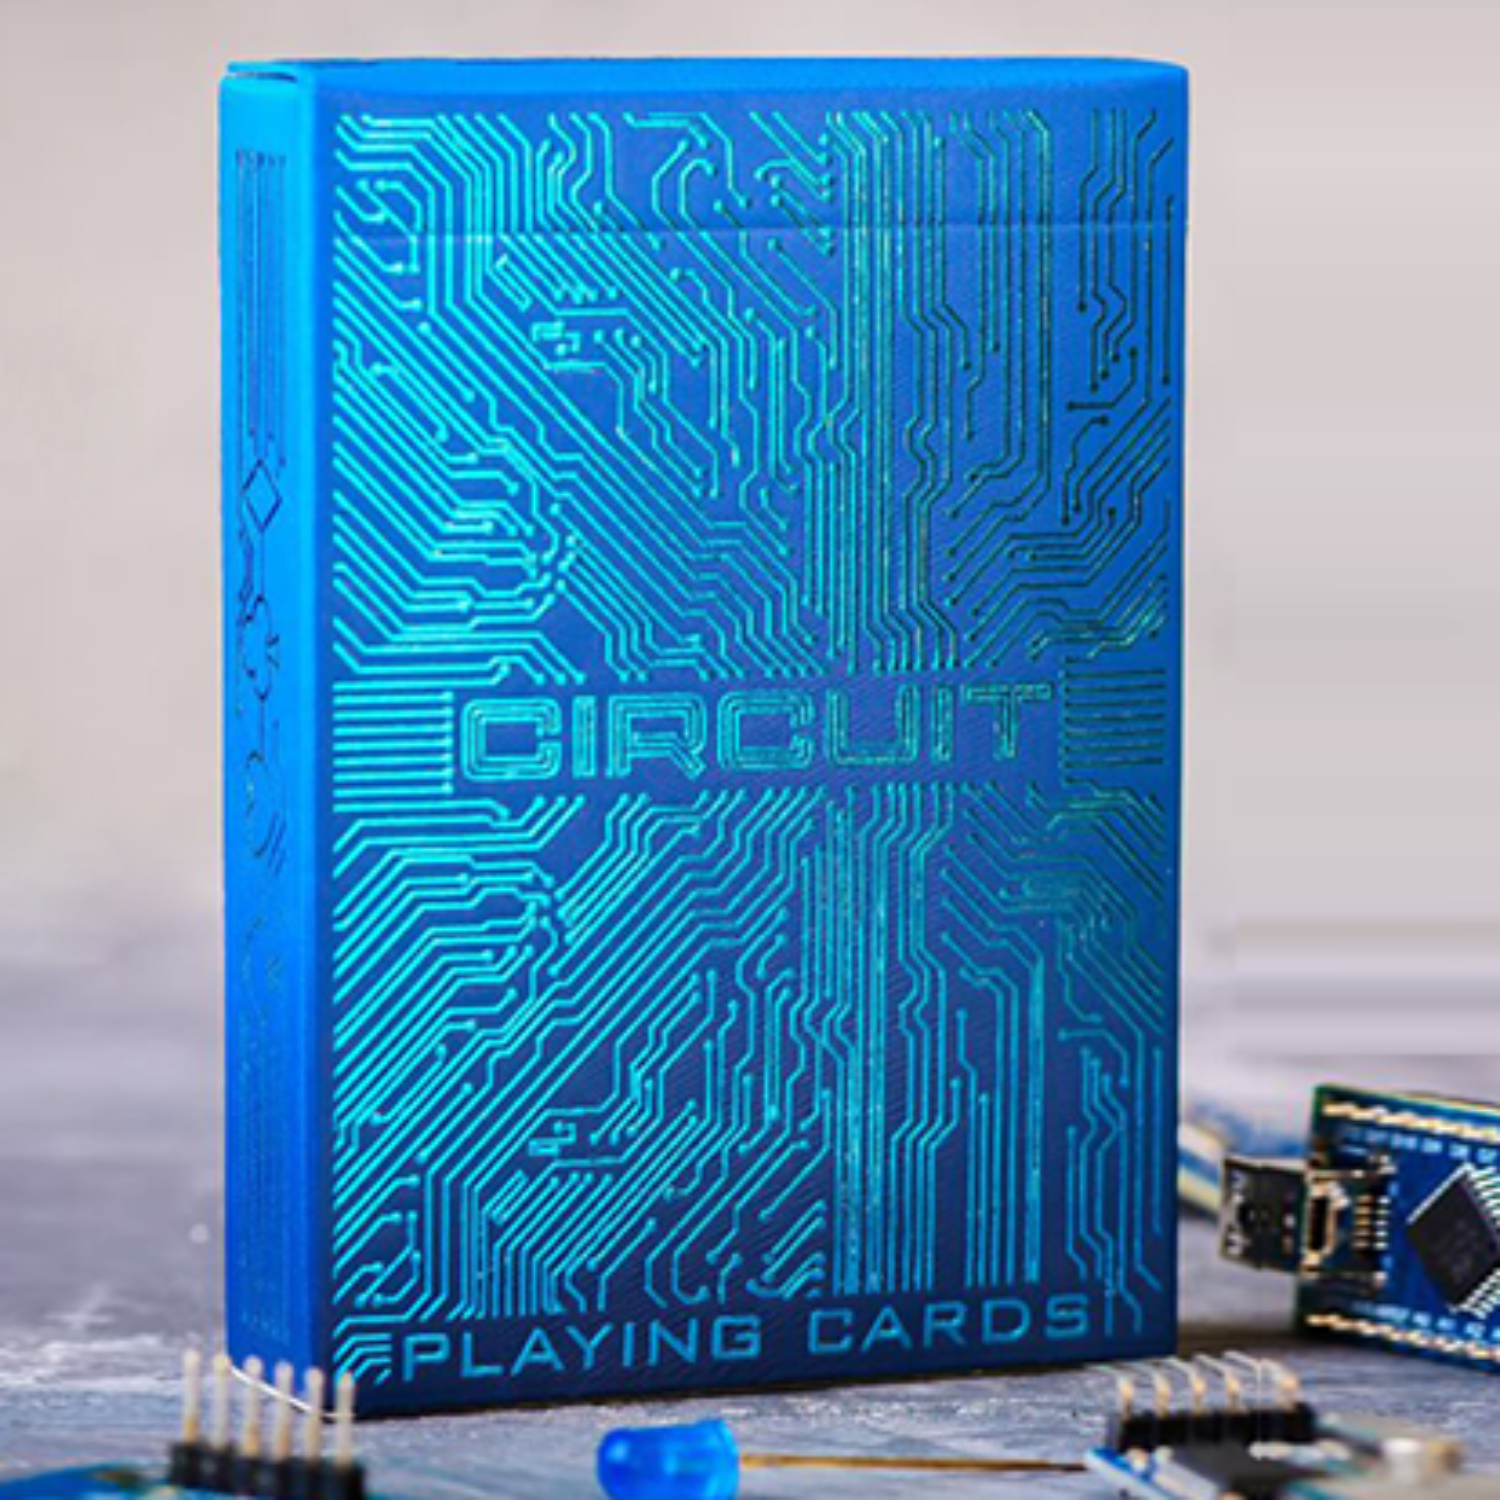 [서킷/블루]Circuit (Blue) Playing Cards by Elephant Playing Cards